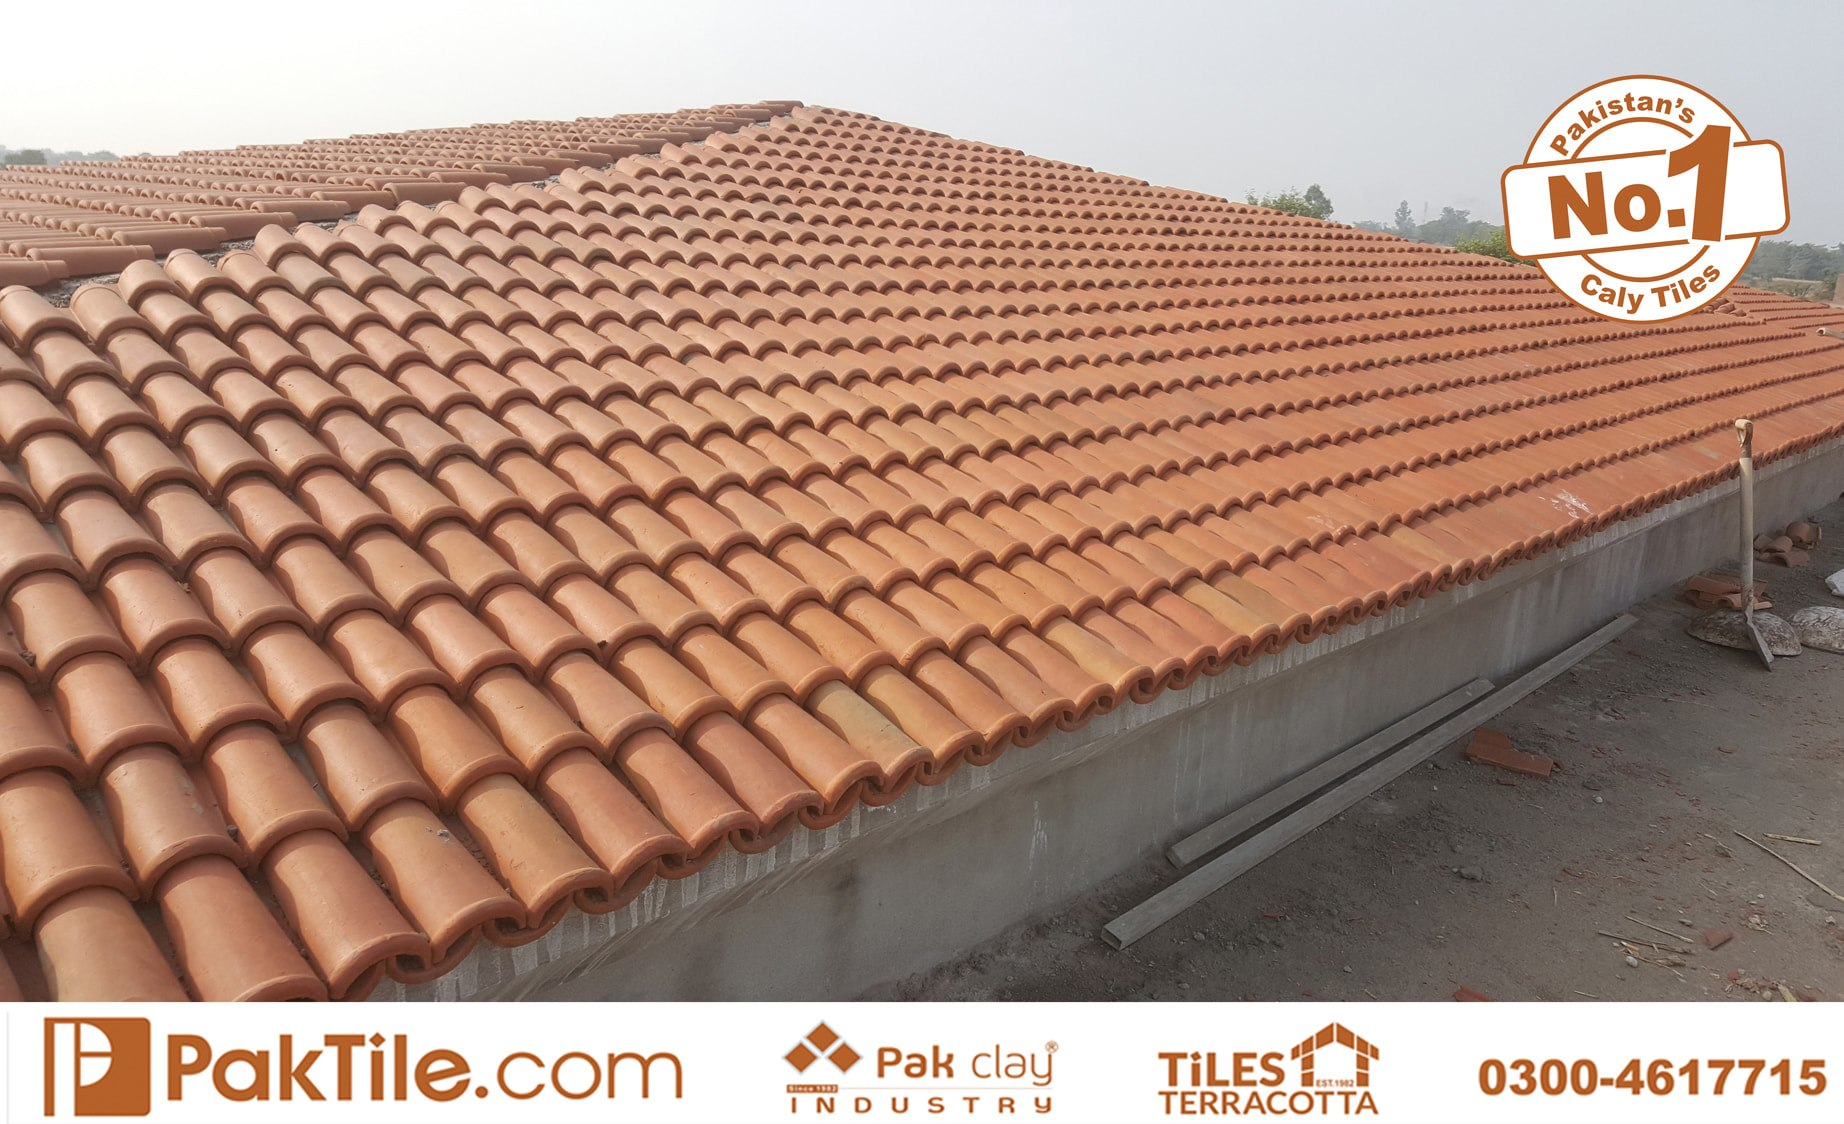 5 Pak Clay Terracotta Roofing Khaprail Tiles in Rawalpindi Images.